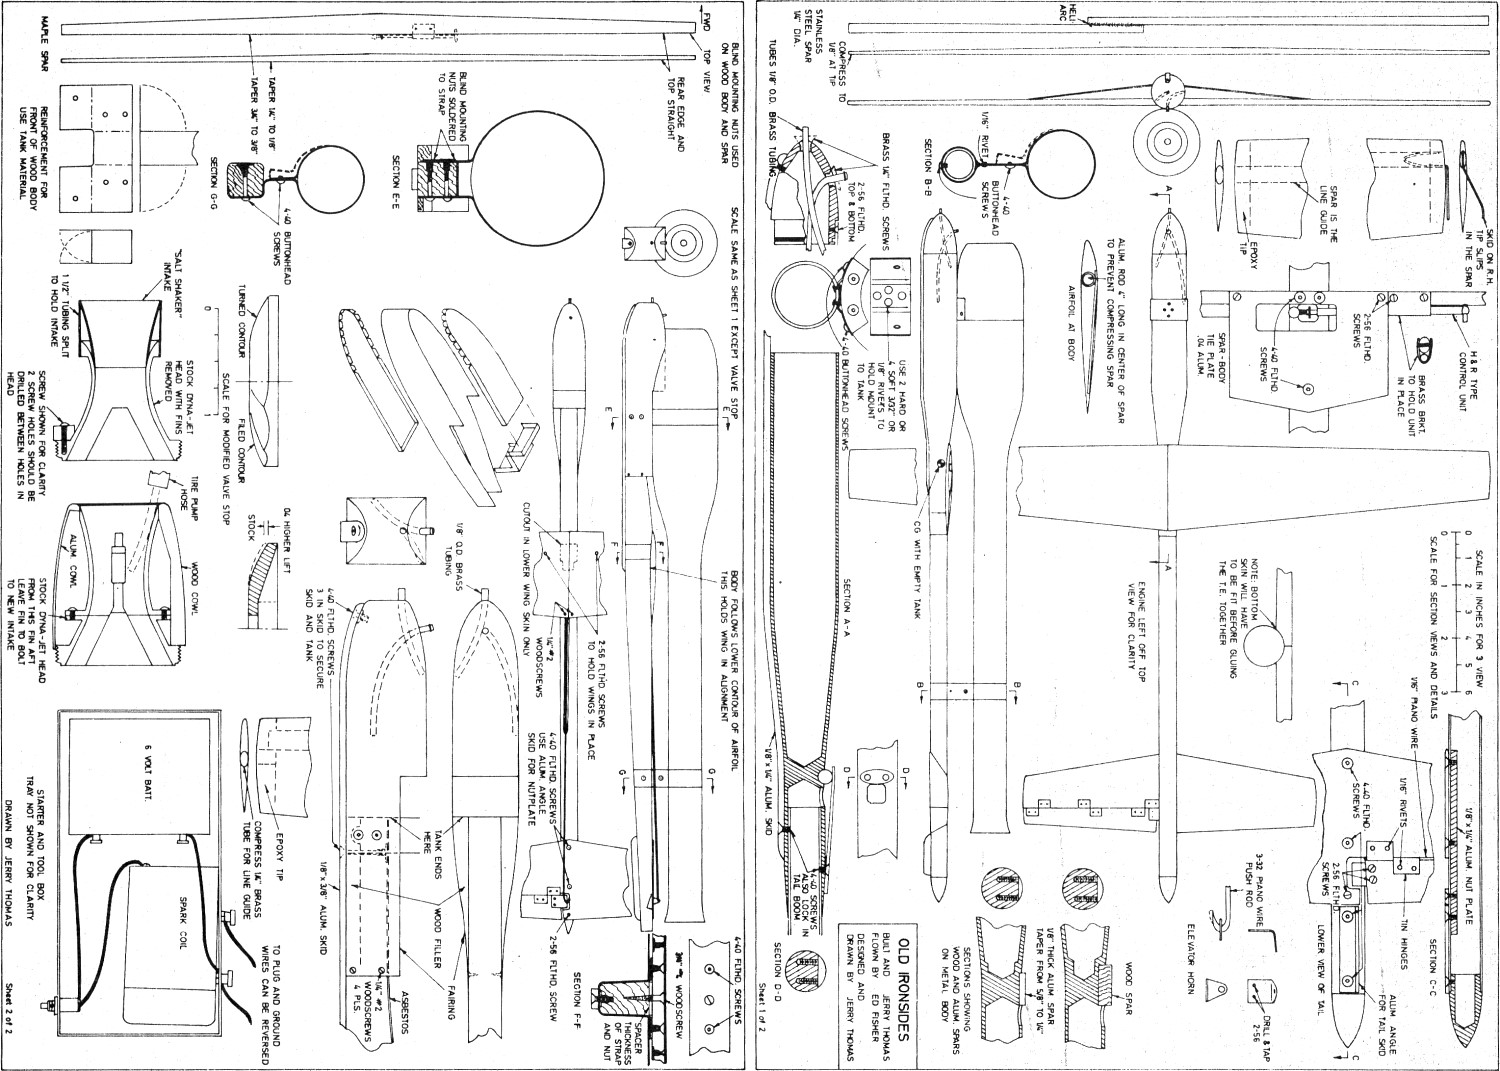 wiring diagram for a small rc airplane